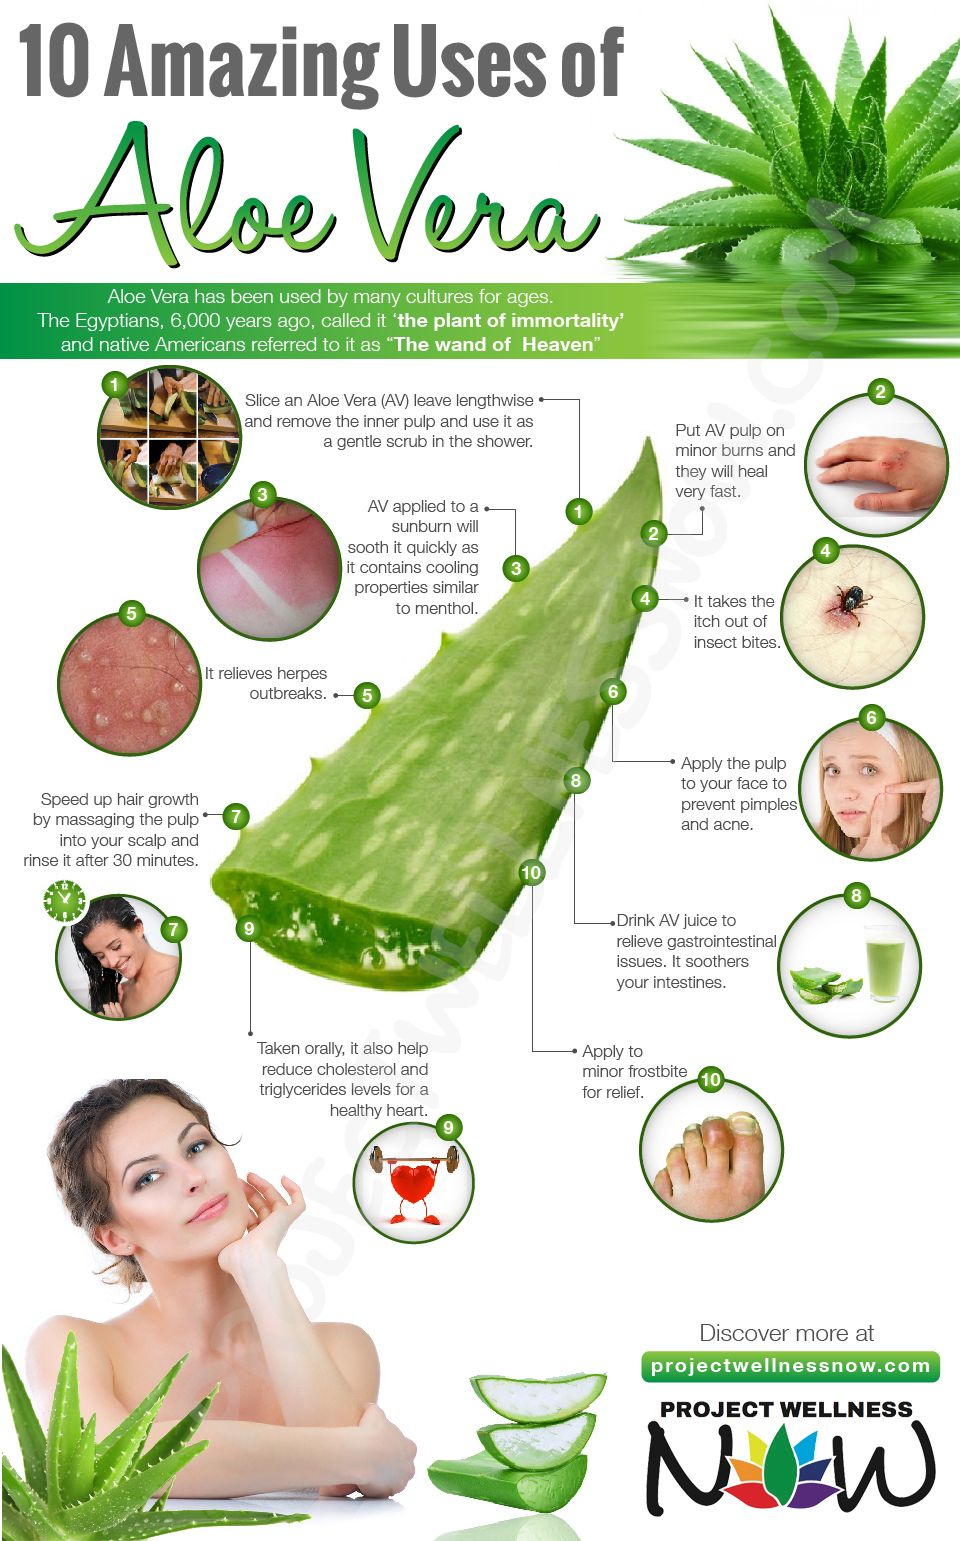 10 Amazing Uses Of Aloe Vera Project Wellness Now Aloe Vera Aloe Vera Skin Care Aloe Vera Benefits